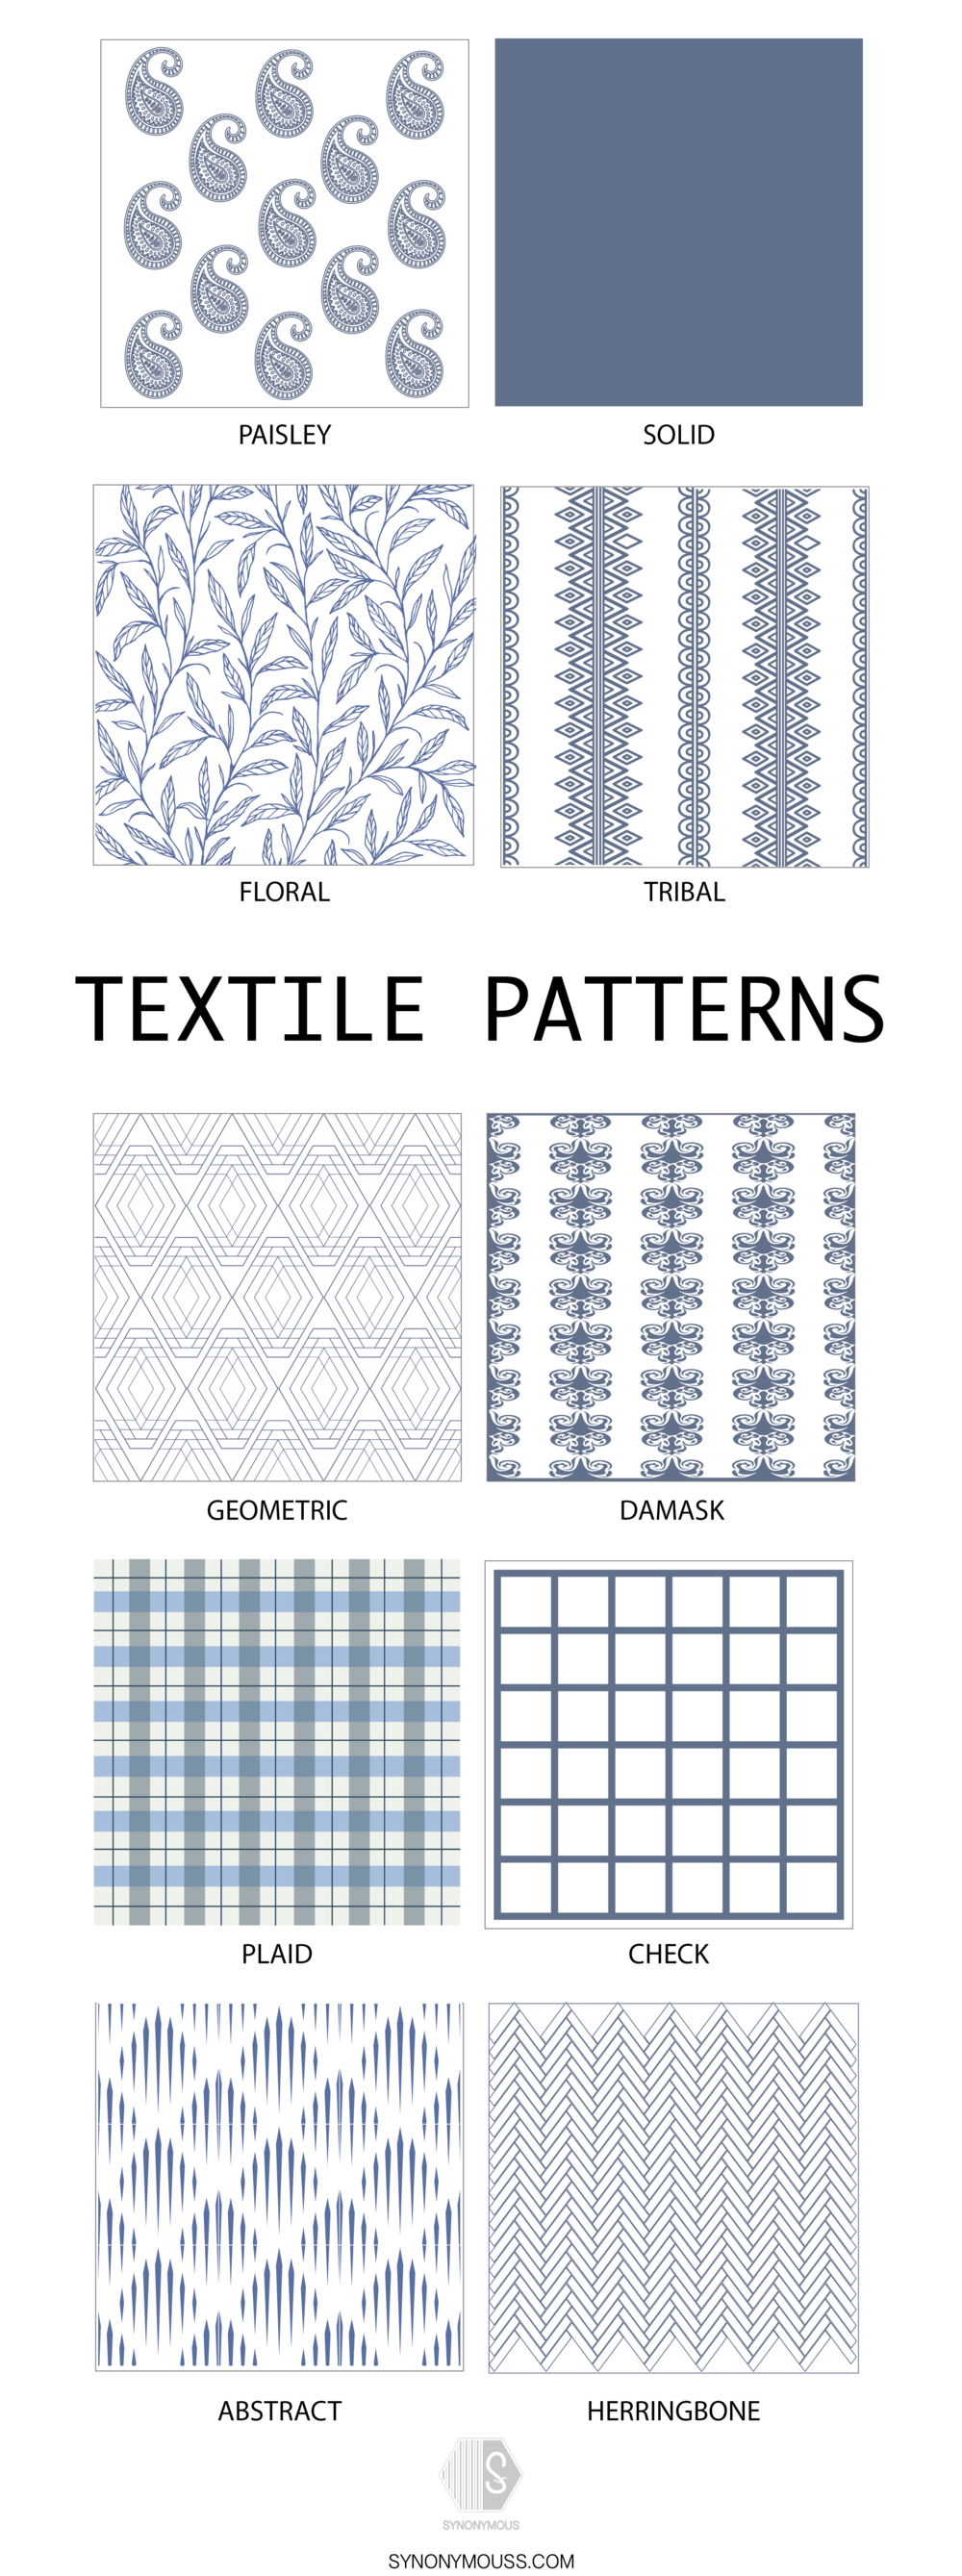 Design Study:  How To Mix Patterns (Textile Patterns) - SYNONYMOUS